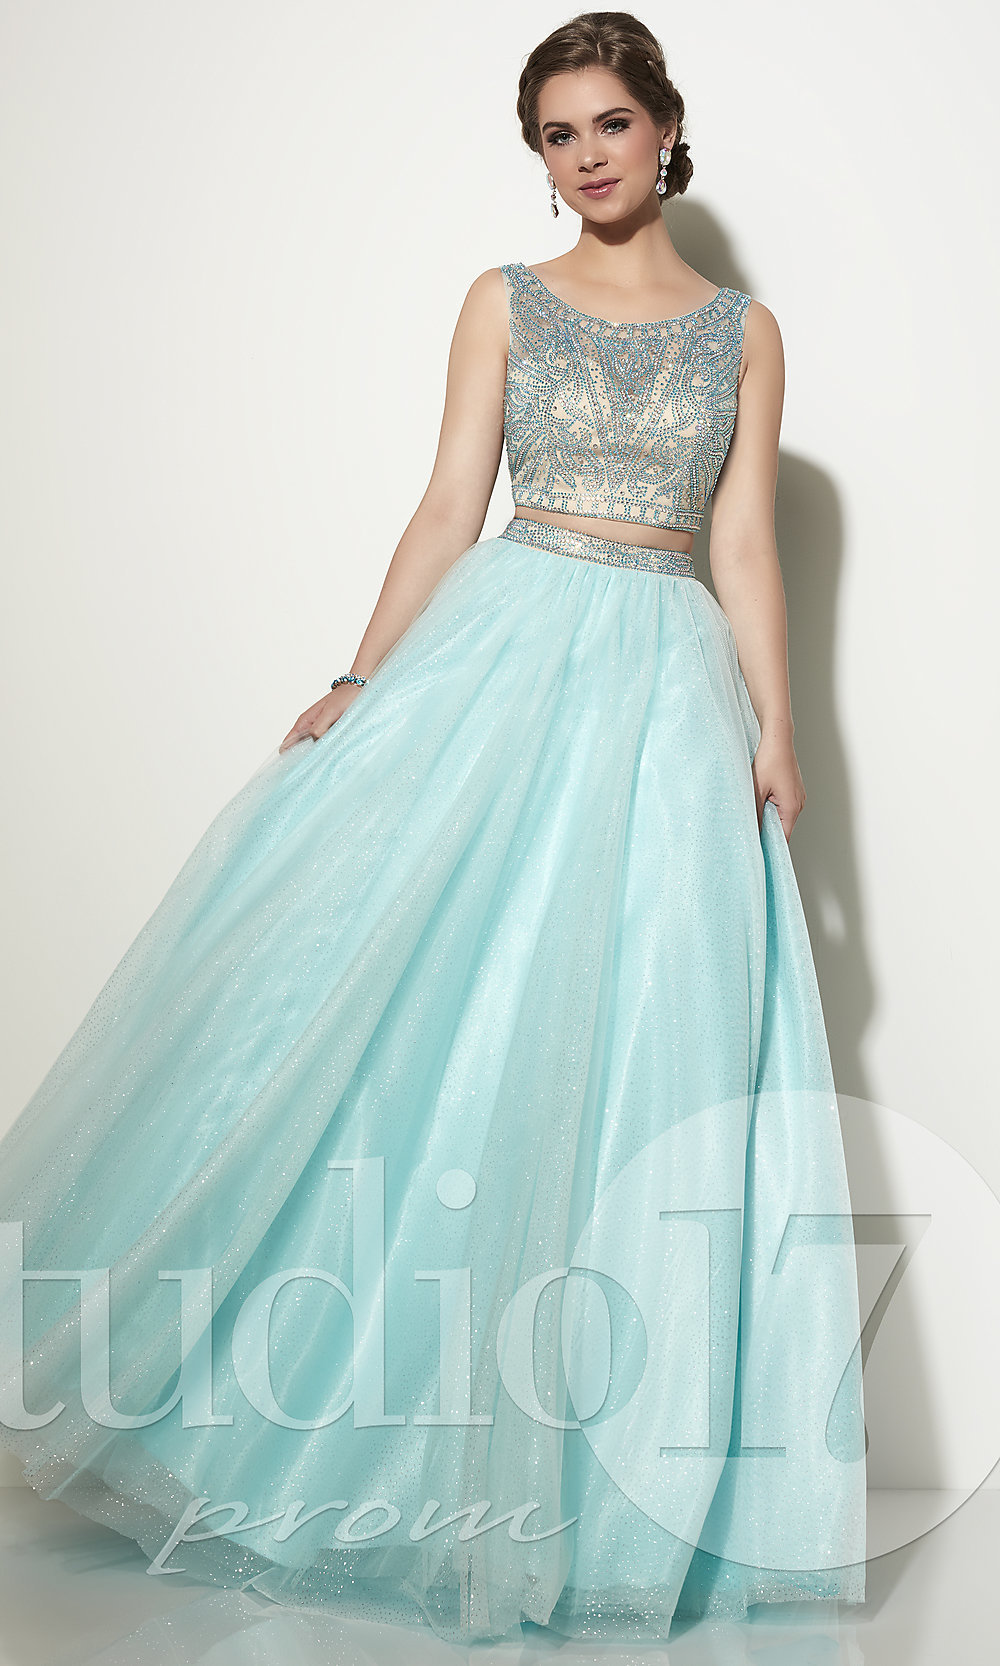 cb1273c029f Two-Piece Long Prom Dress by Studio 17 with Beaded